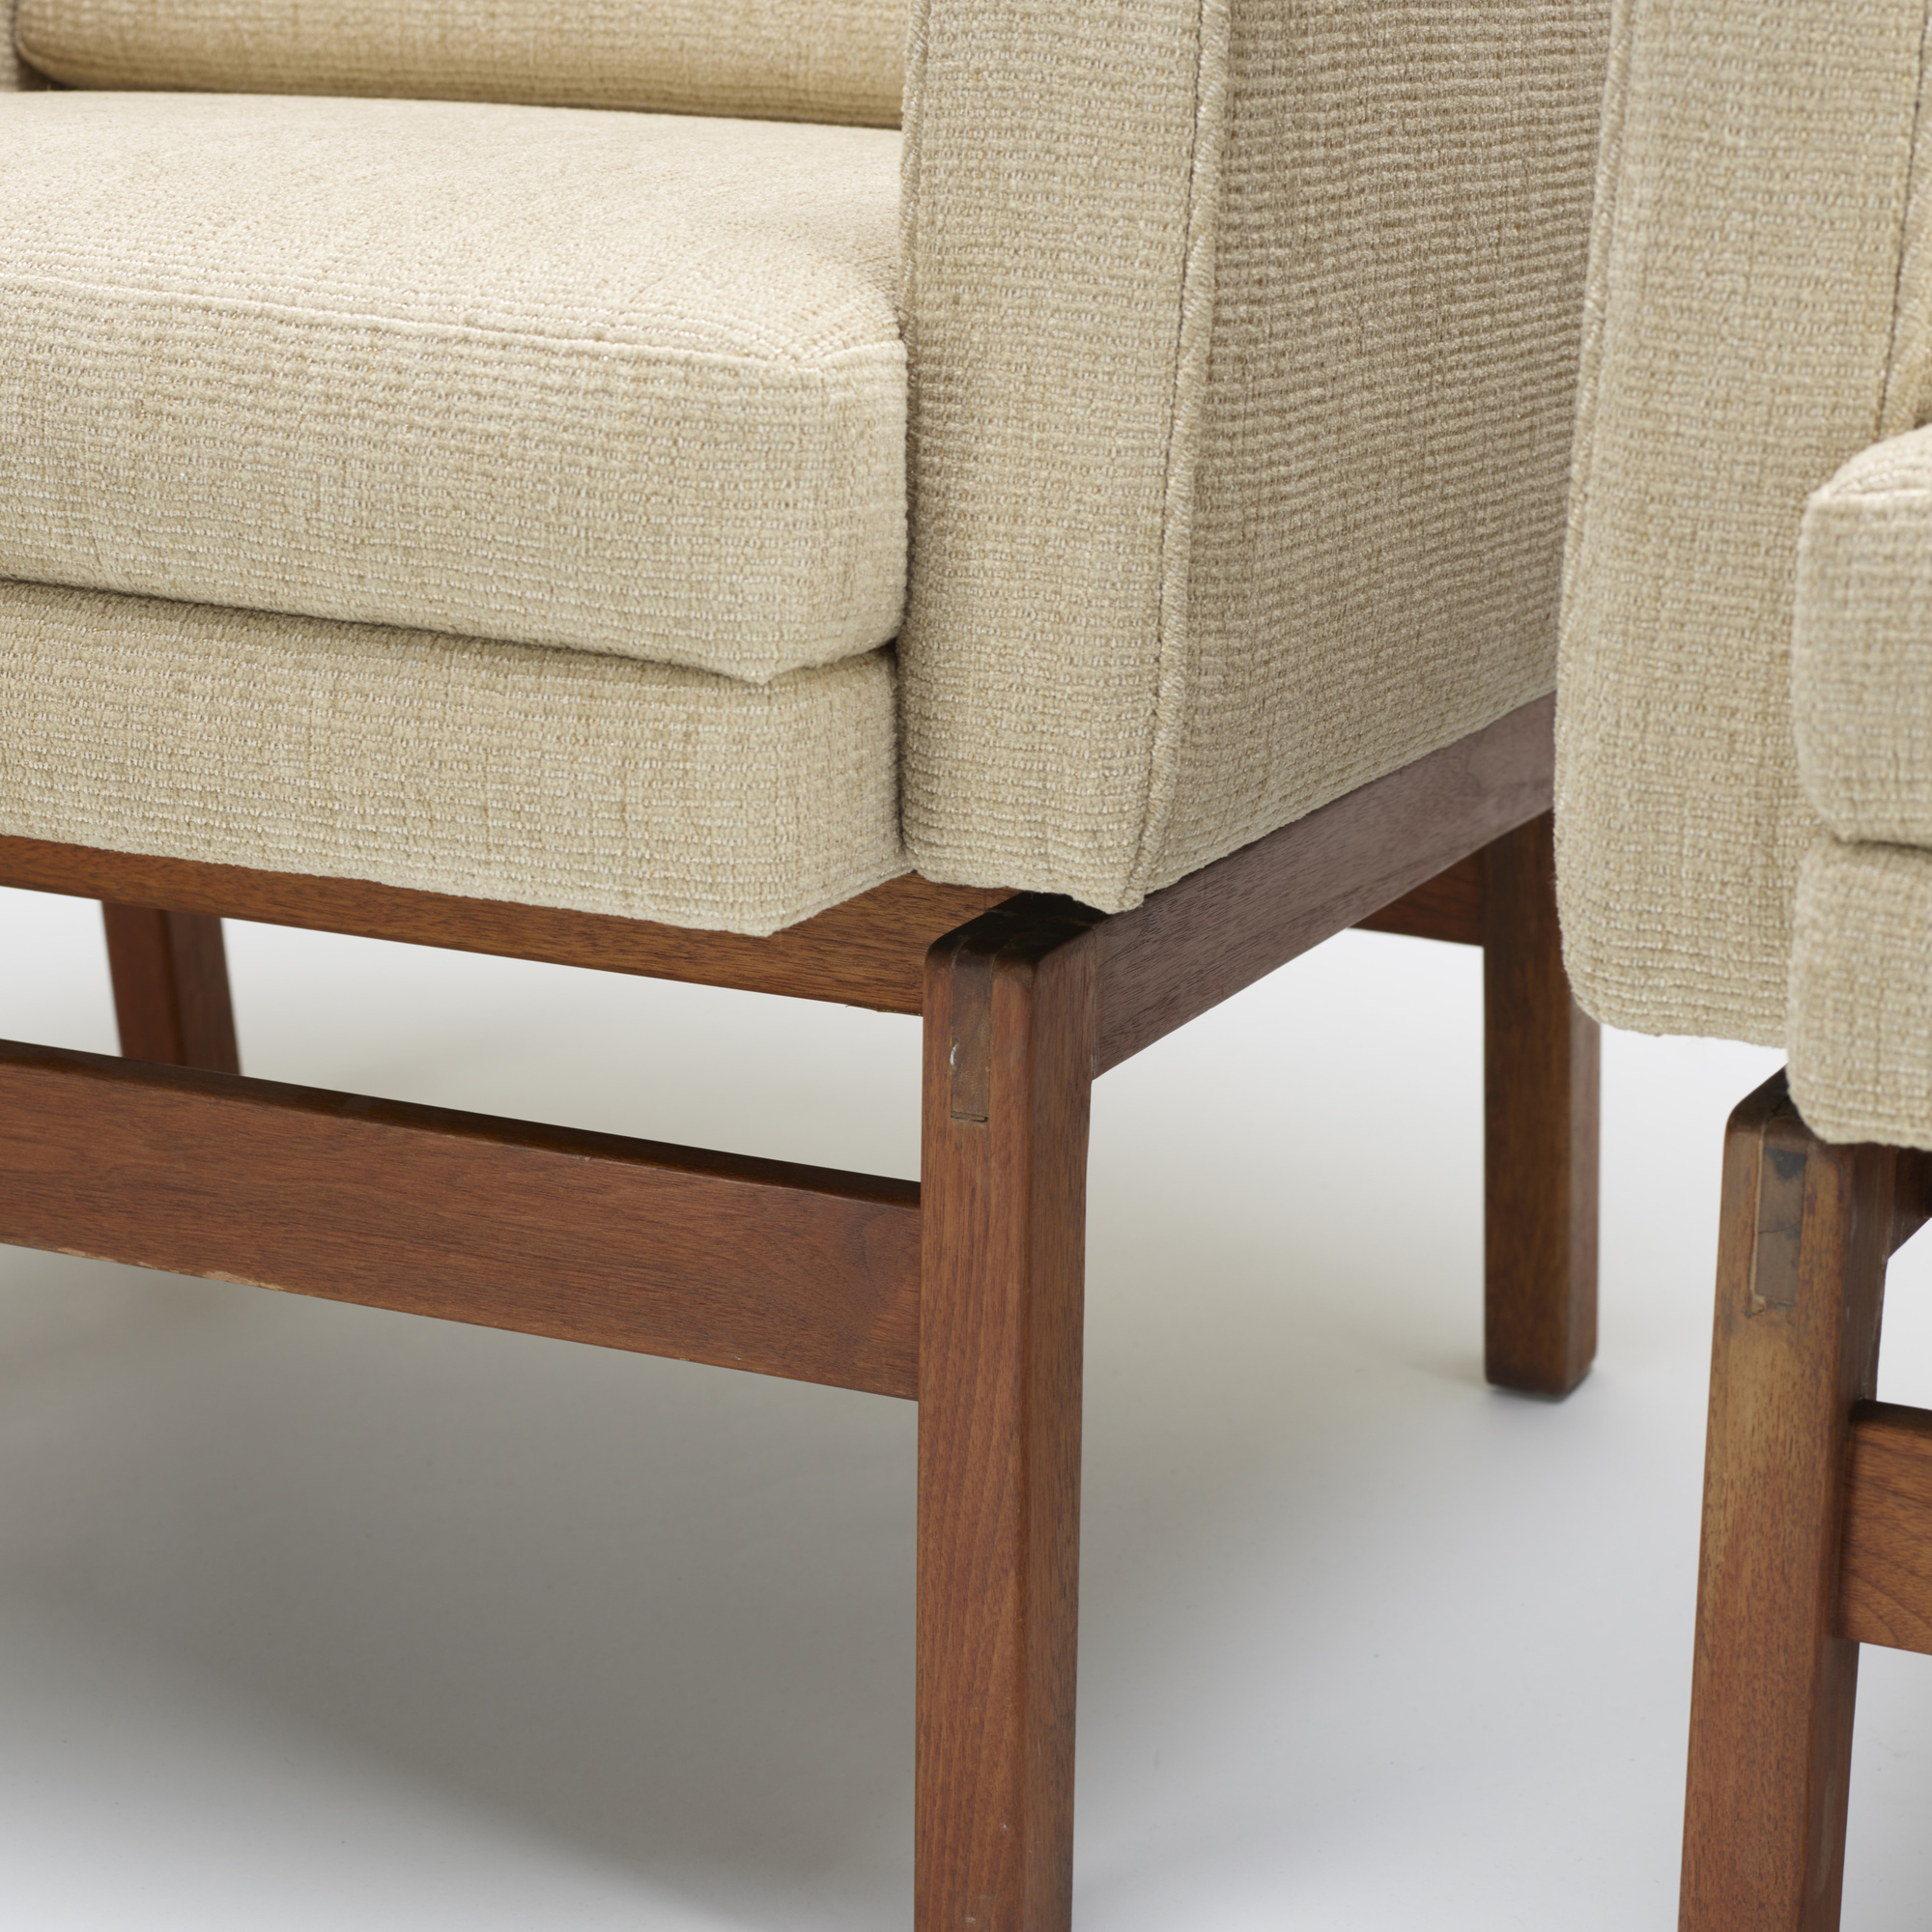 113: Jens Risom / lounge chairs, pair (3 of 3)